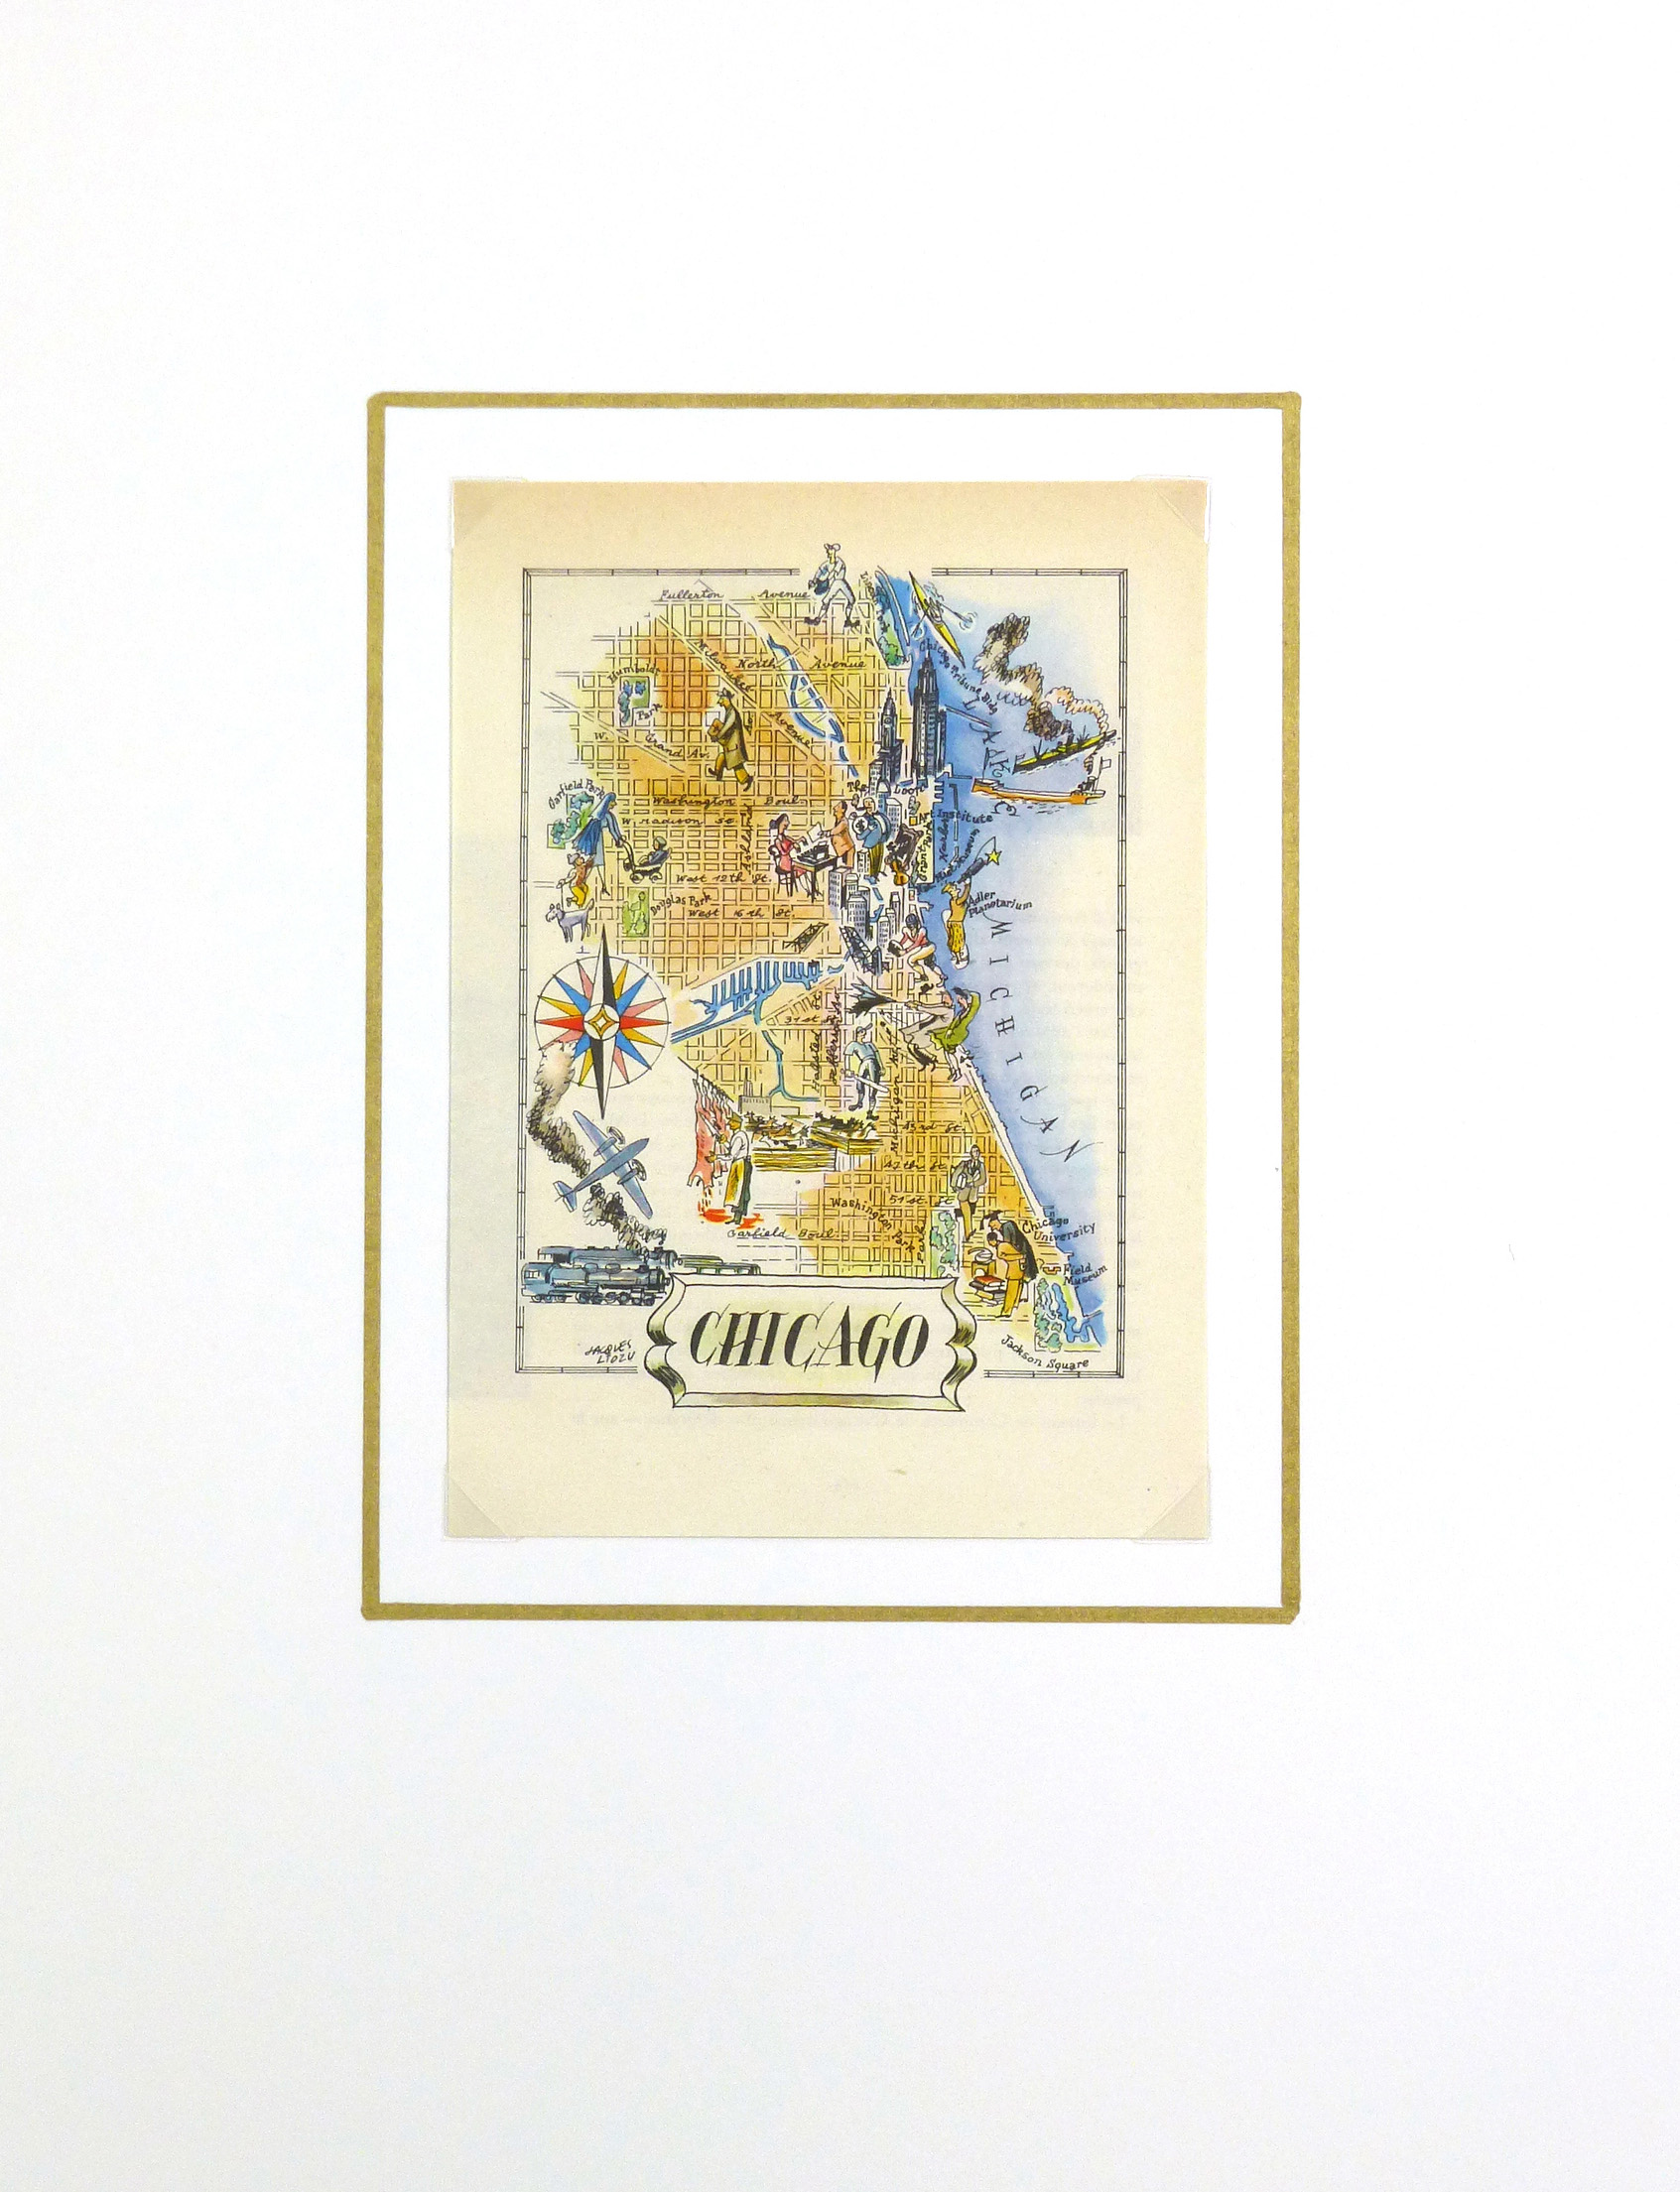 Pictorial Map - Chicago, 1946-matted-6252K